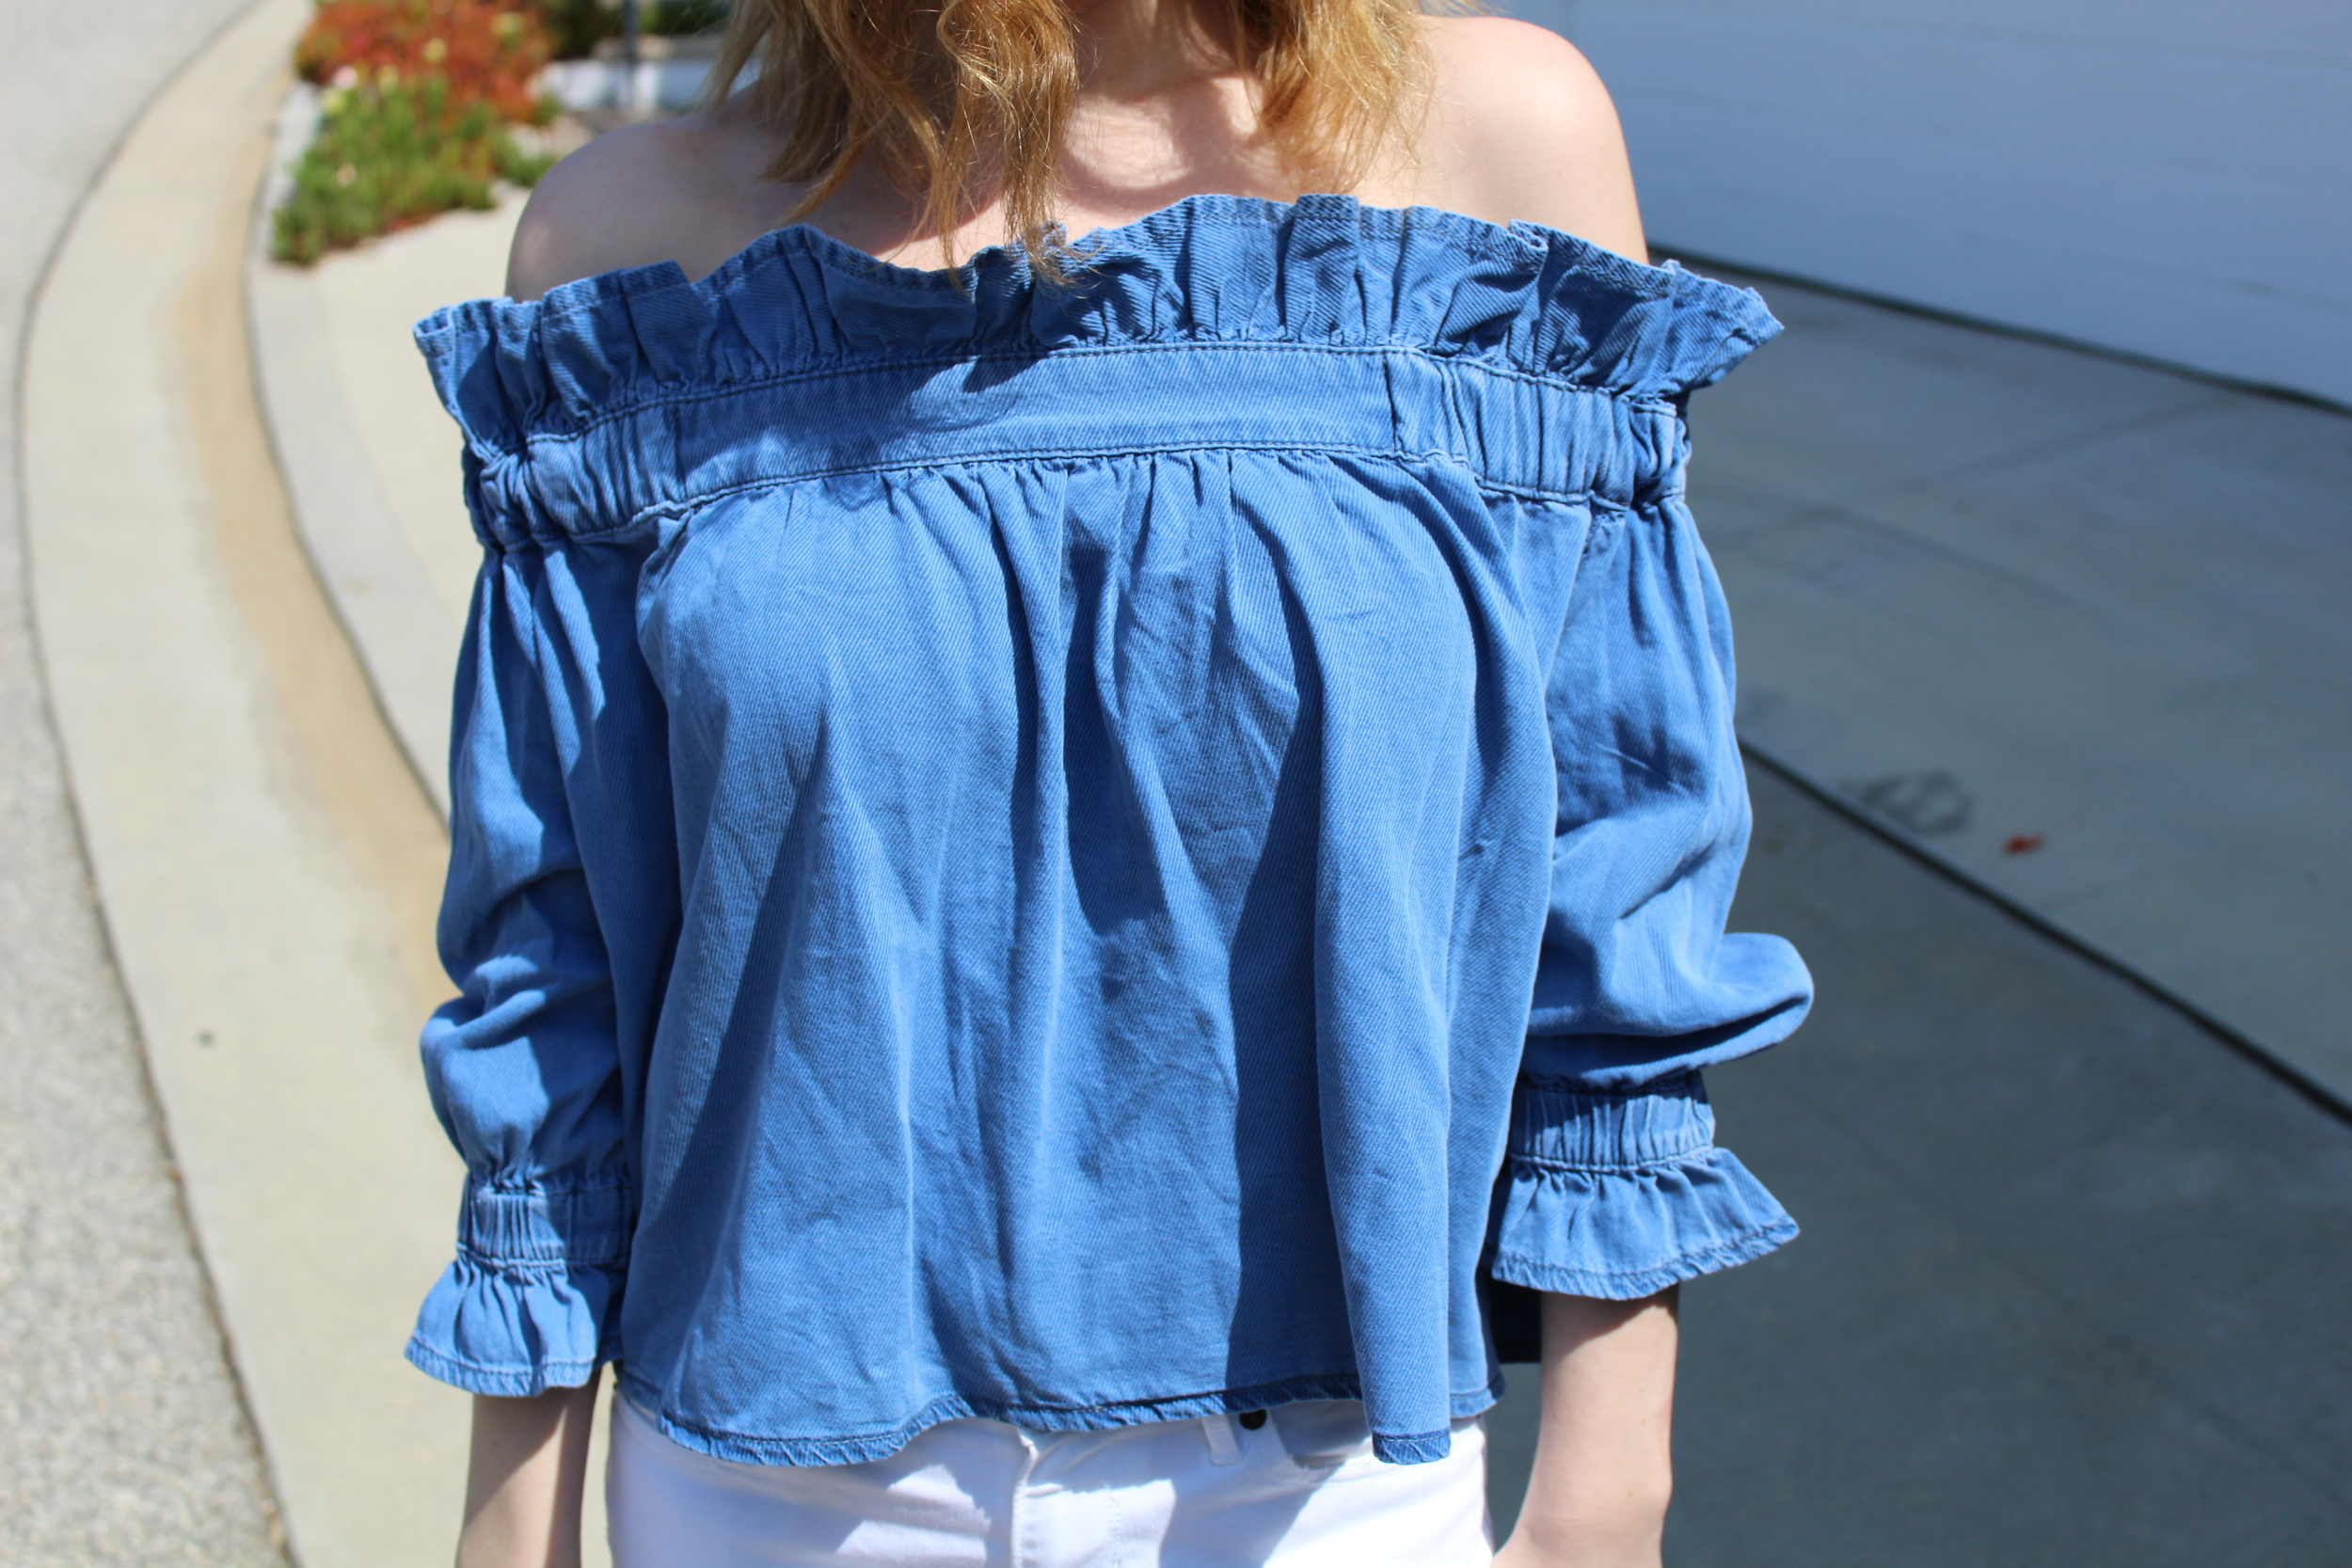 The denim on this off the shoulder top makes it a little more casual but I think it would be easy to dress it up as well if you paired it with darker pants and a heel!